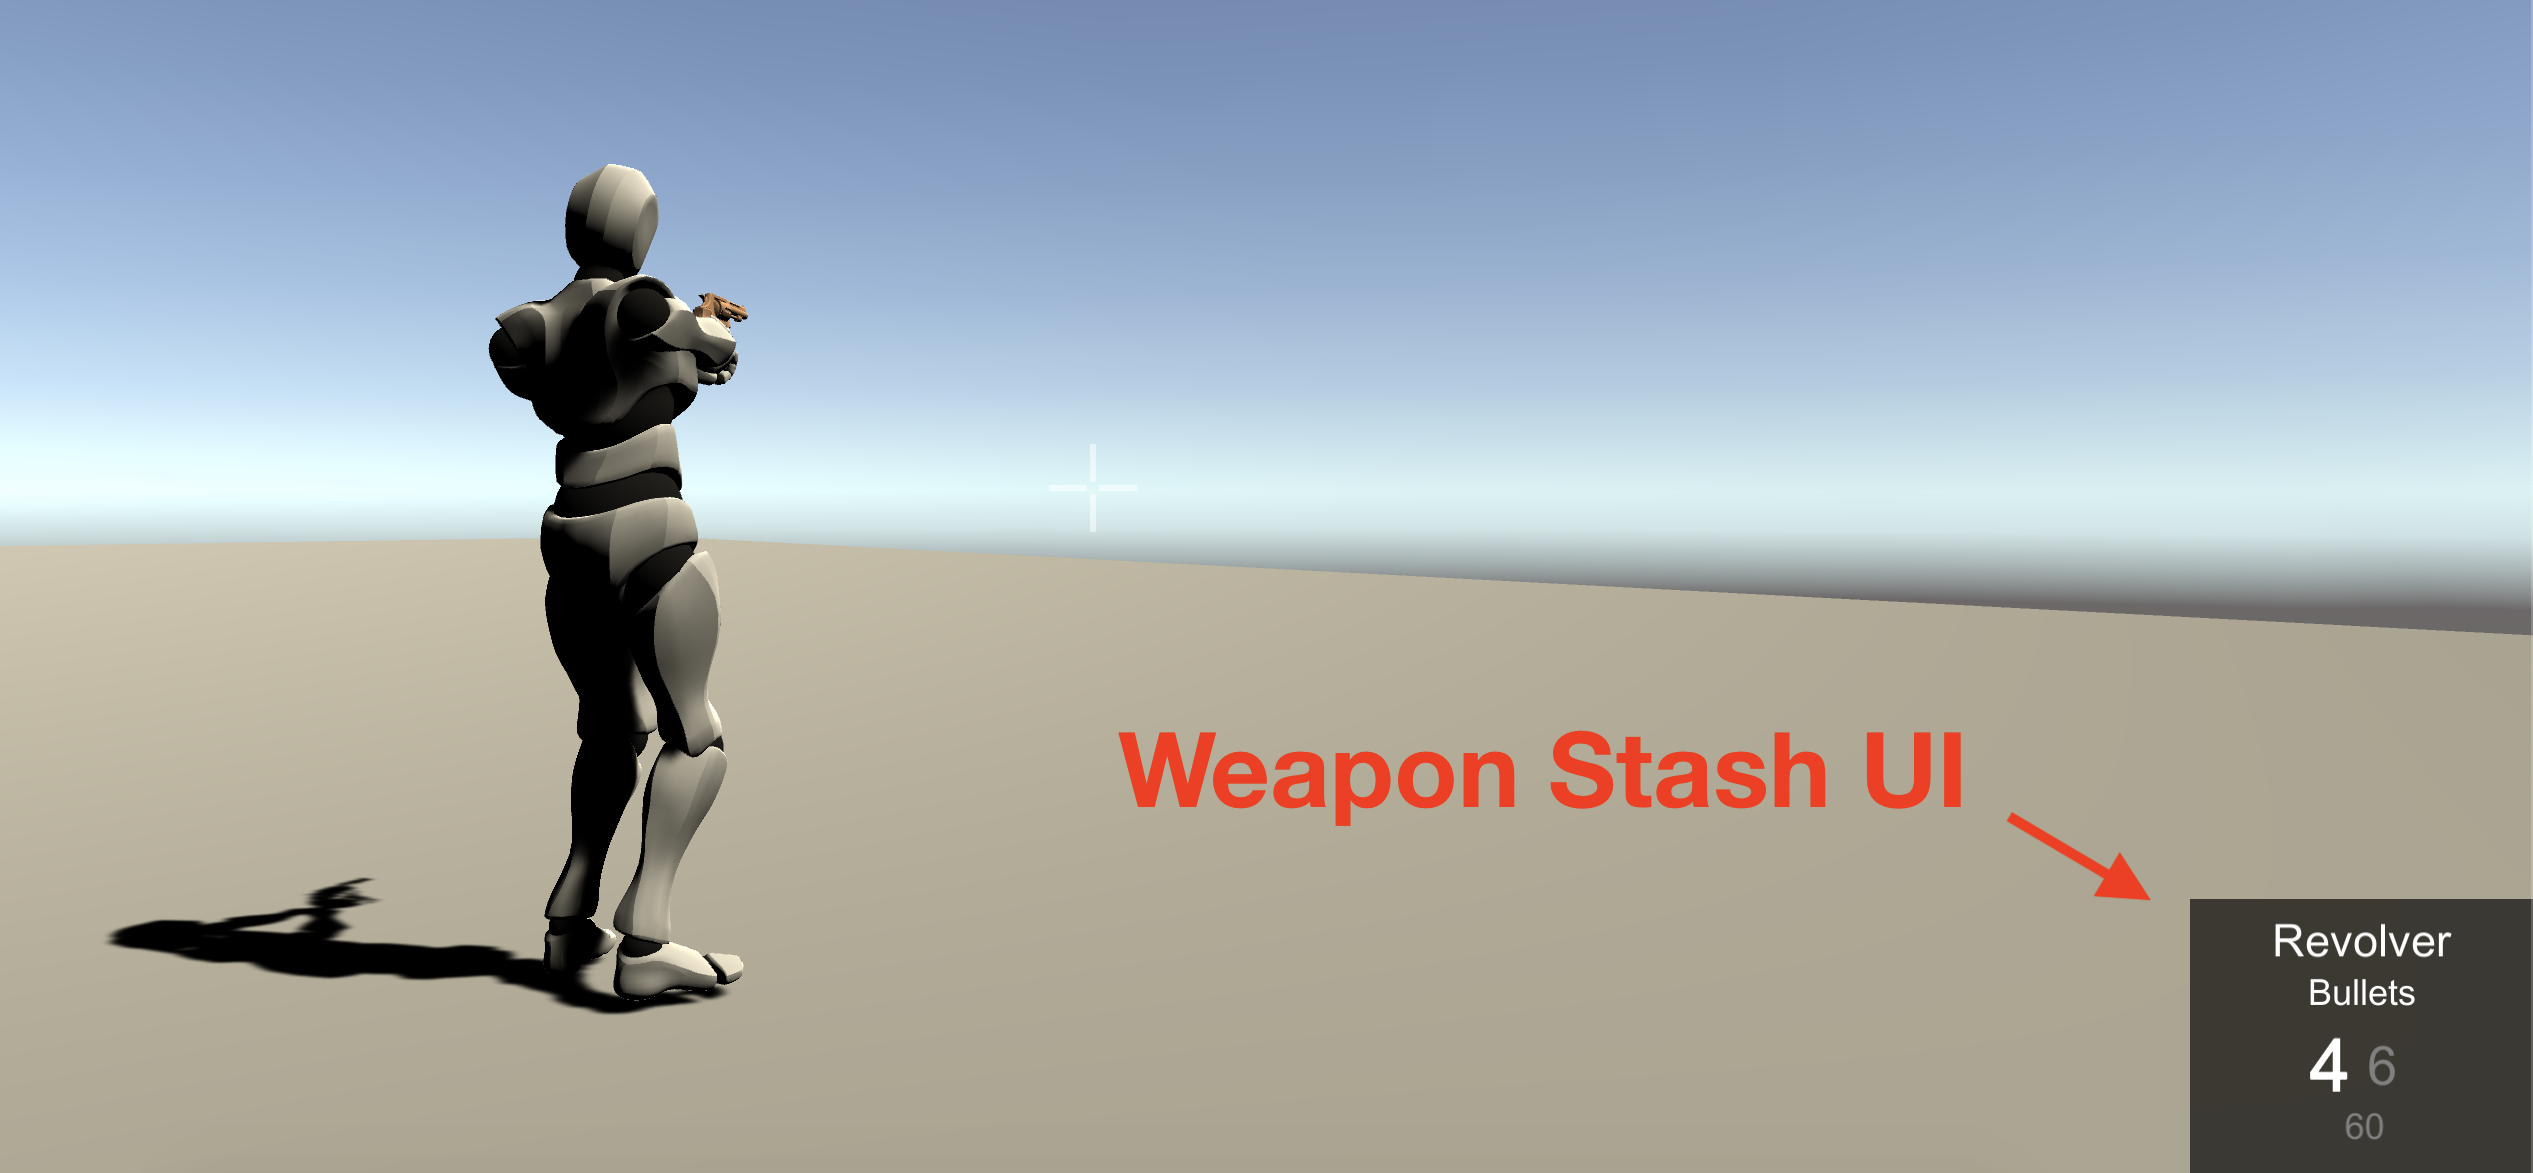 Weapon Stash UI component